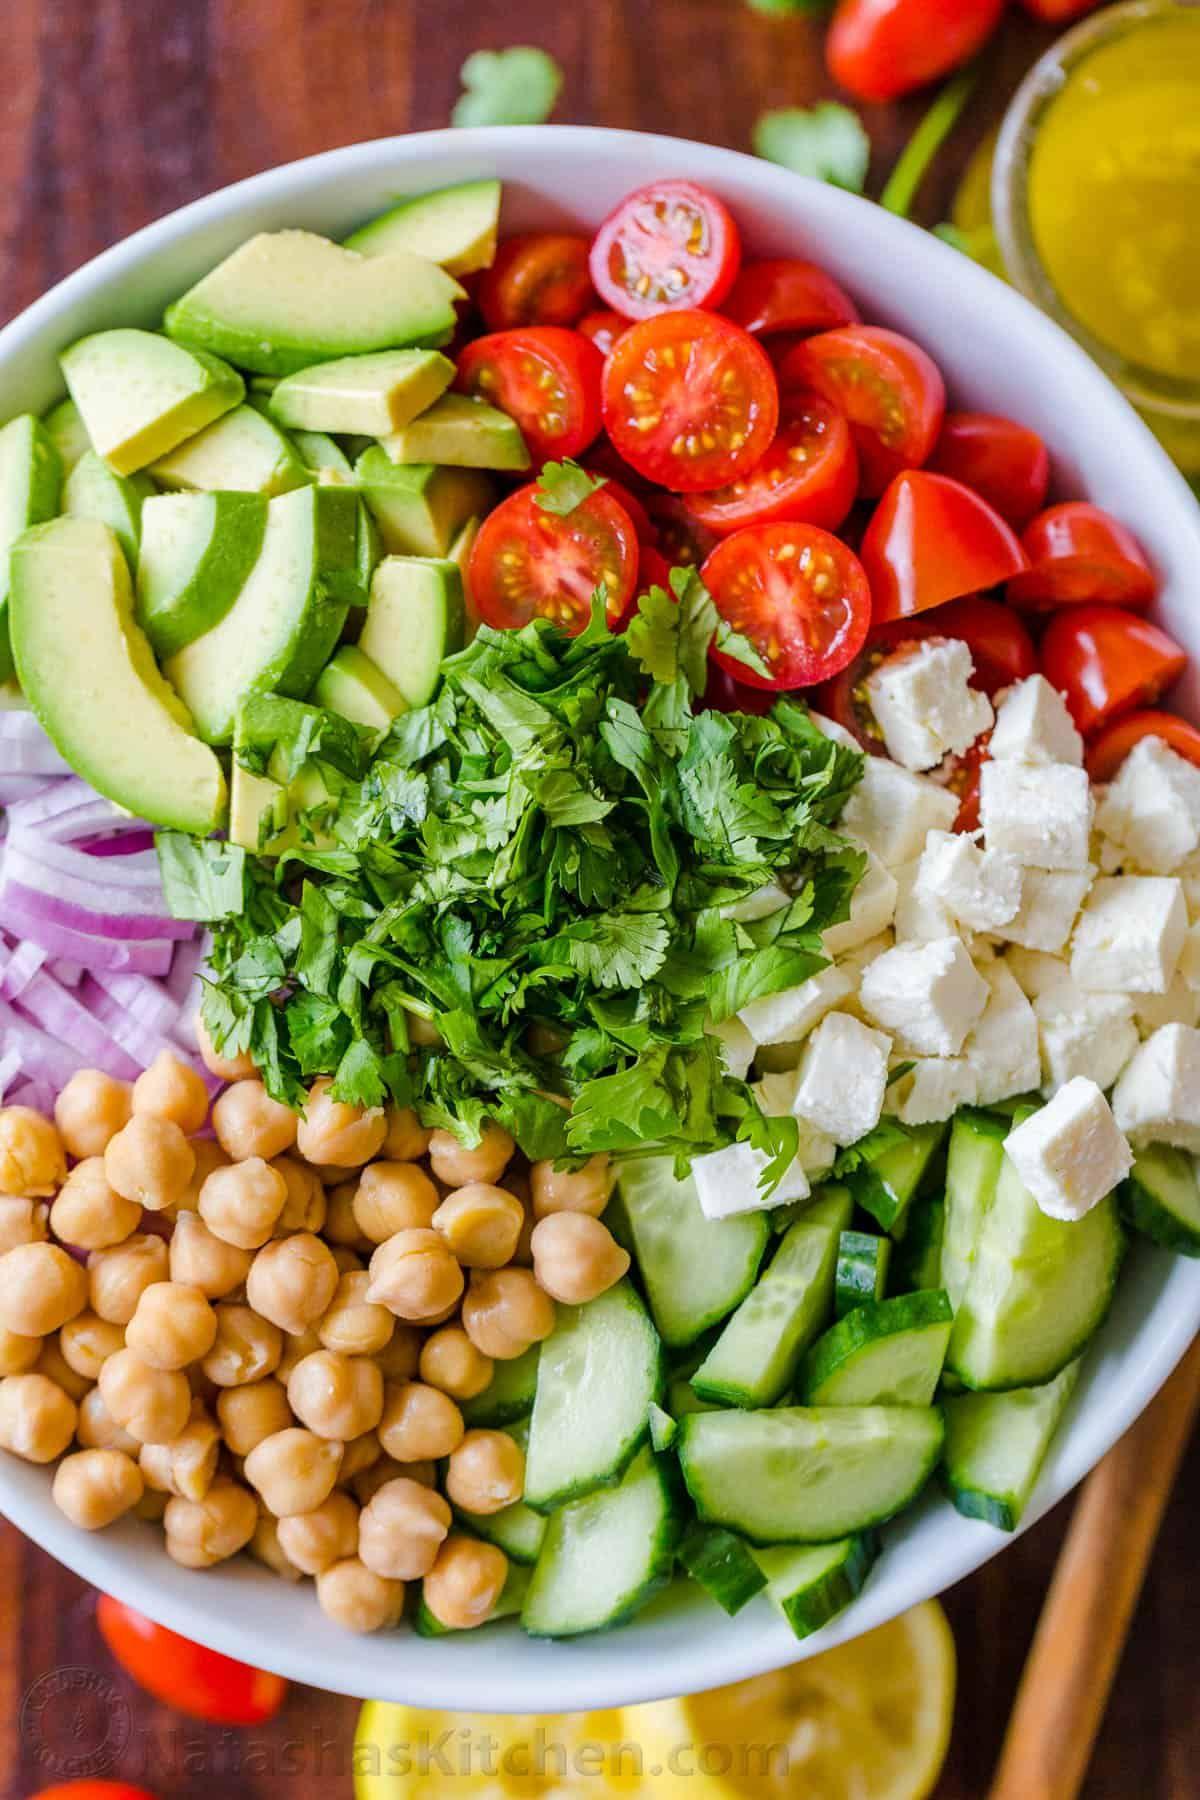 Chickpea Salad loaded with crisp cucumbers, juicy tomatoes, creamy avocado, feta cheese and chickpeas or garbanzo beans. Fresh, healthy and protein packed!